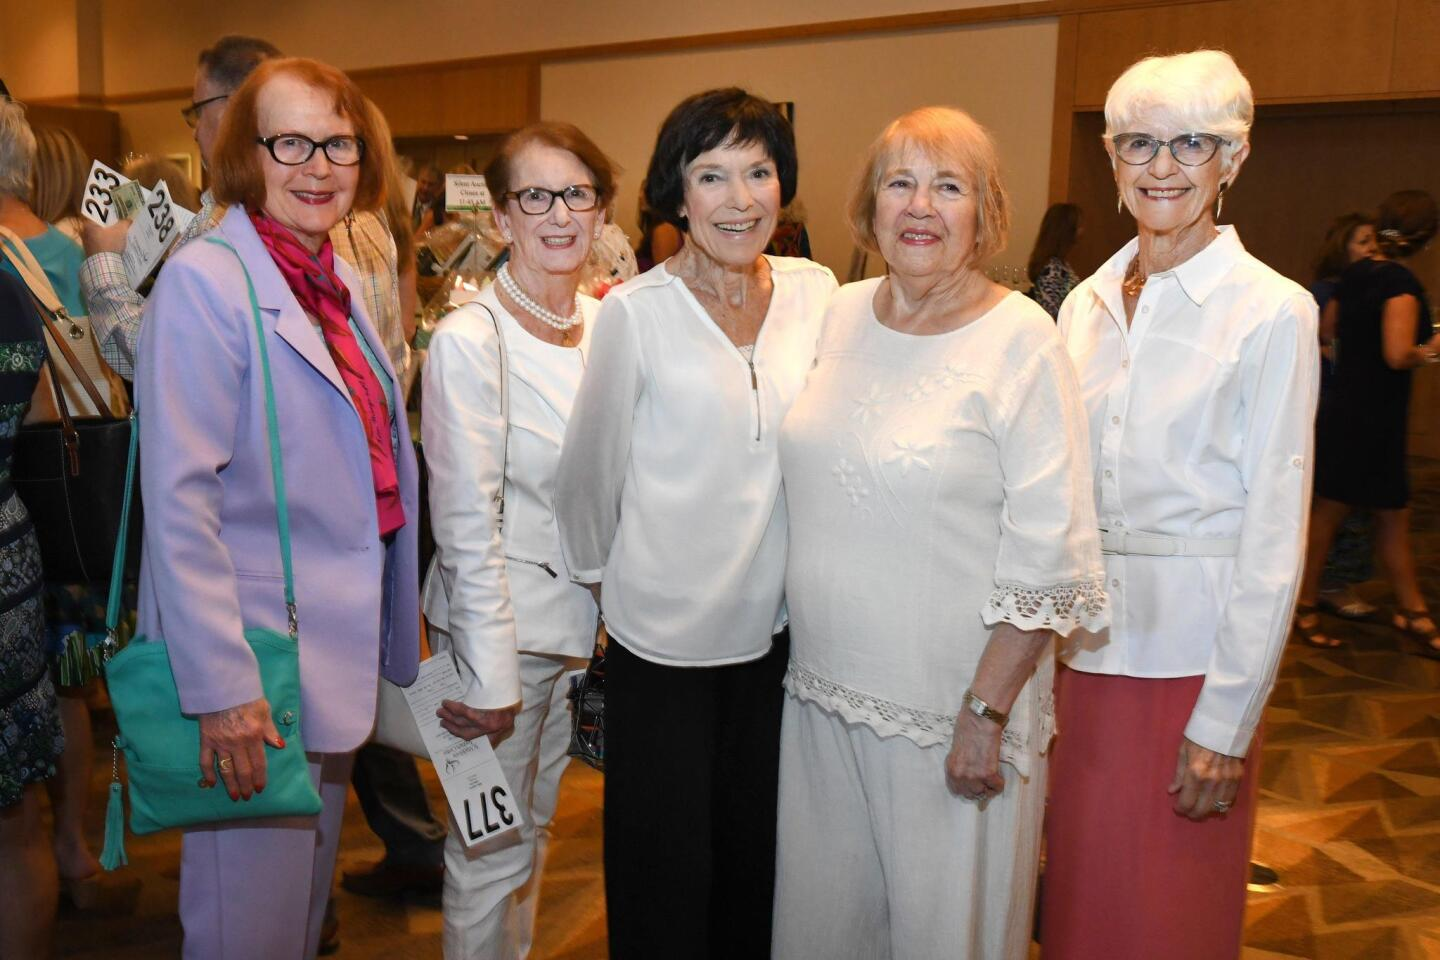 Fashion luncheon raises funds for Sophie's Center